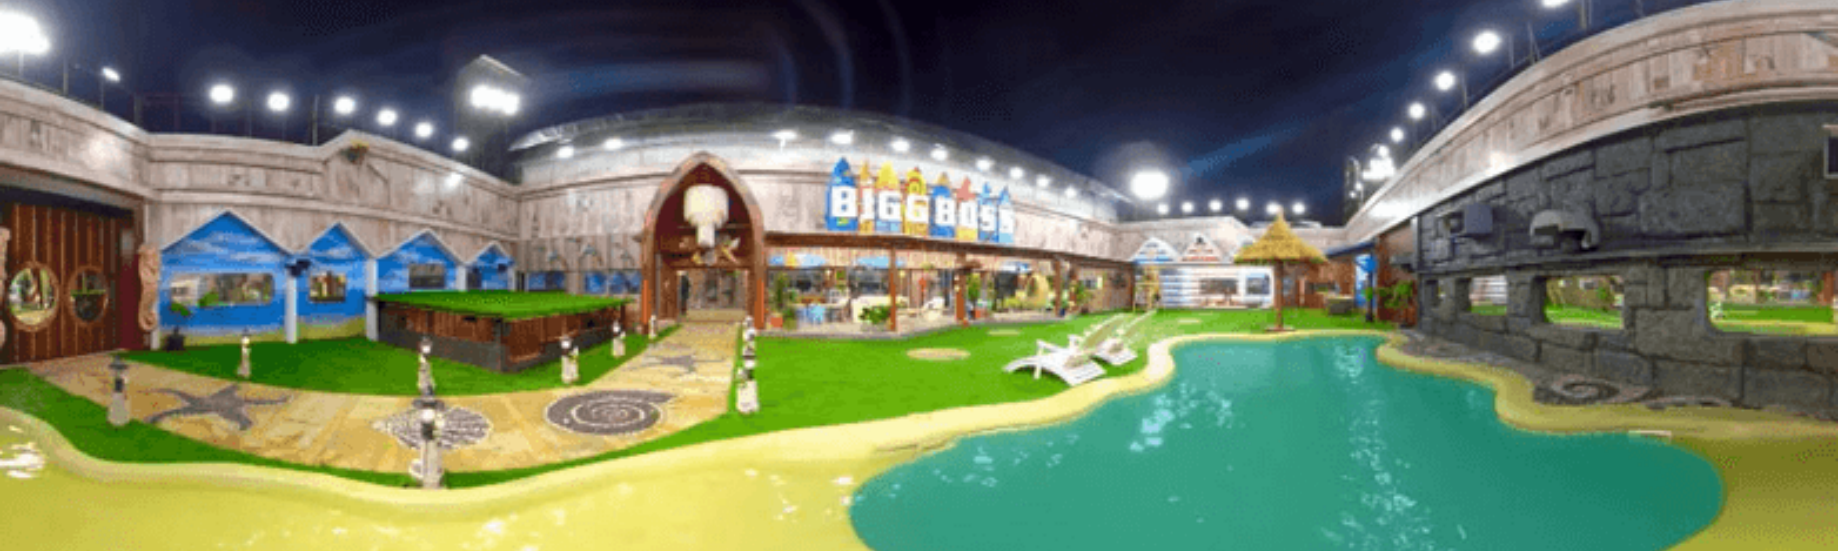 Bigg Boss 13 New House Location With Images By Bigg Boss 13 Vote Medium